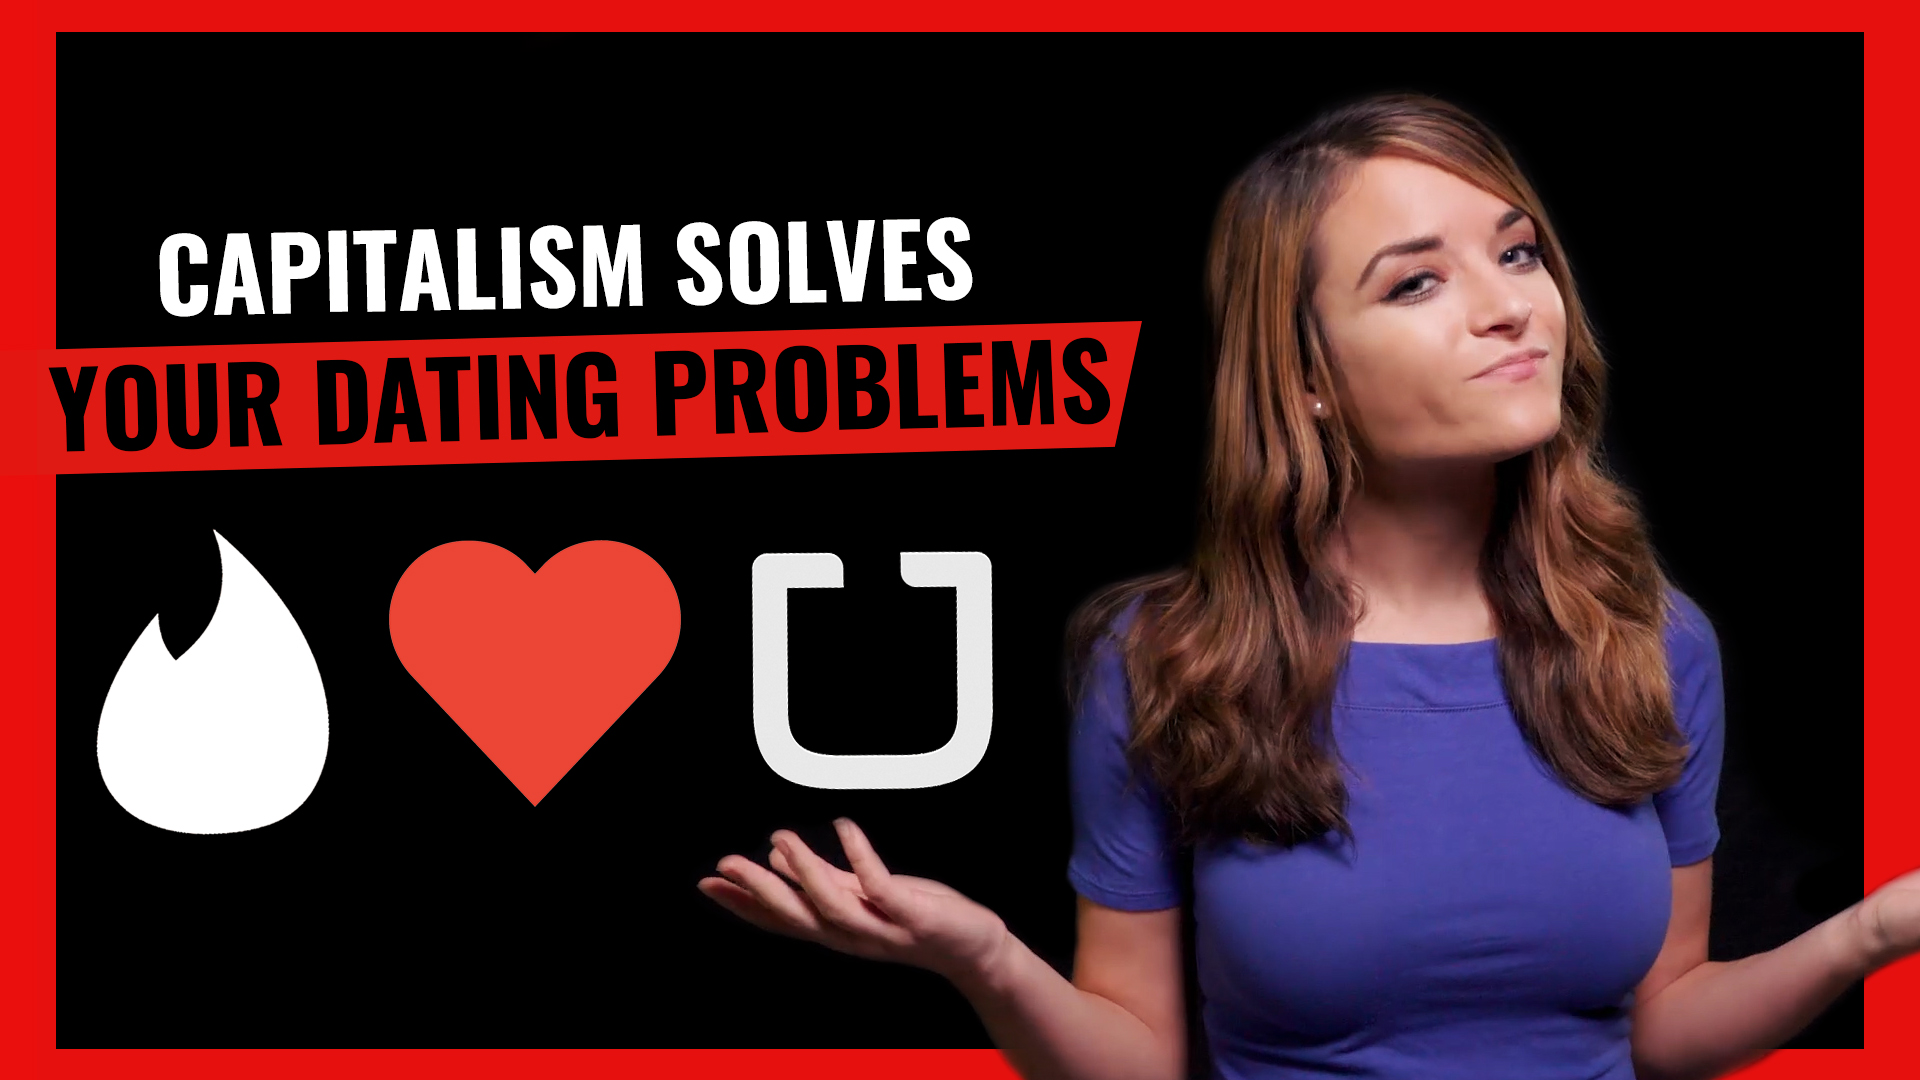 dating problems, dating apps, uber, capitalism